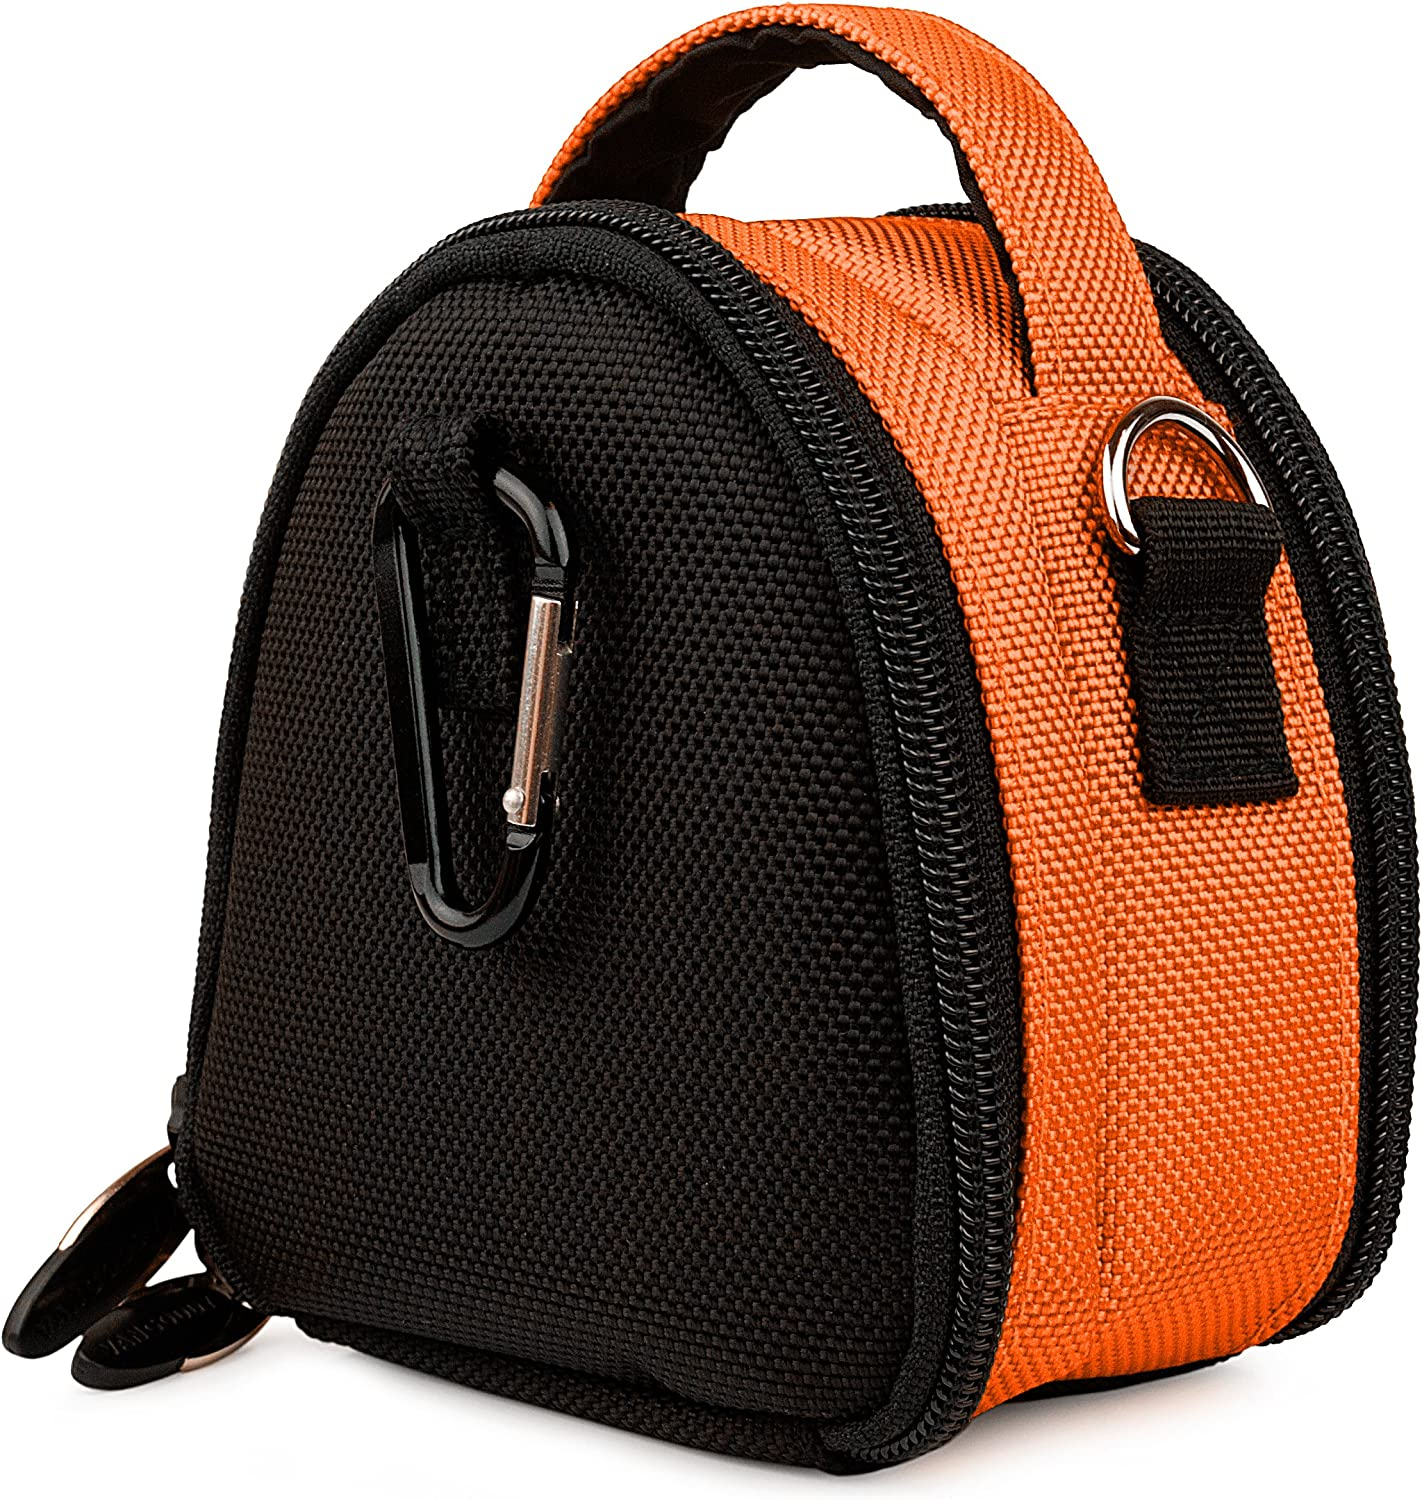 Vangoddy Mini Carrying Bag Case for Leica Compact Cameras